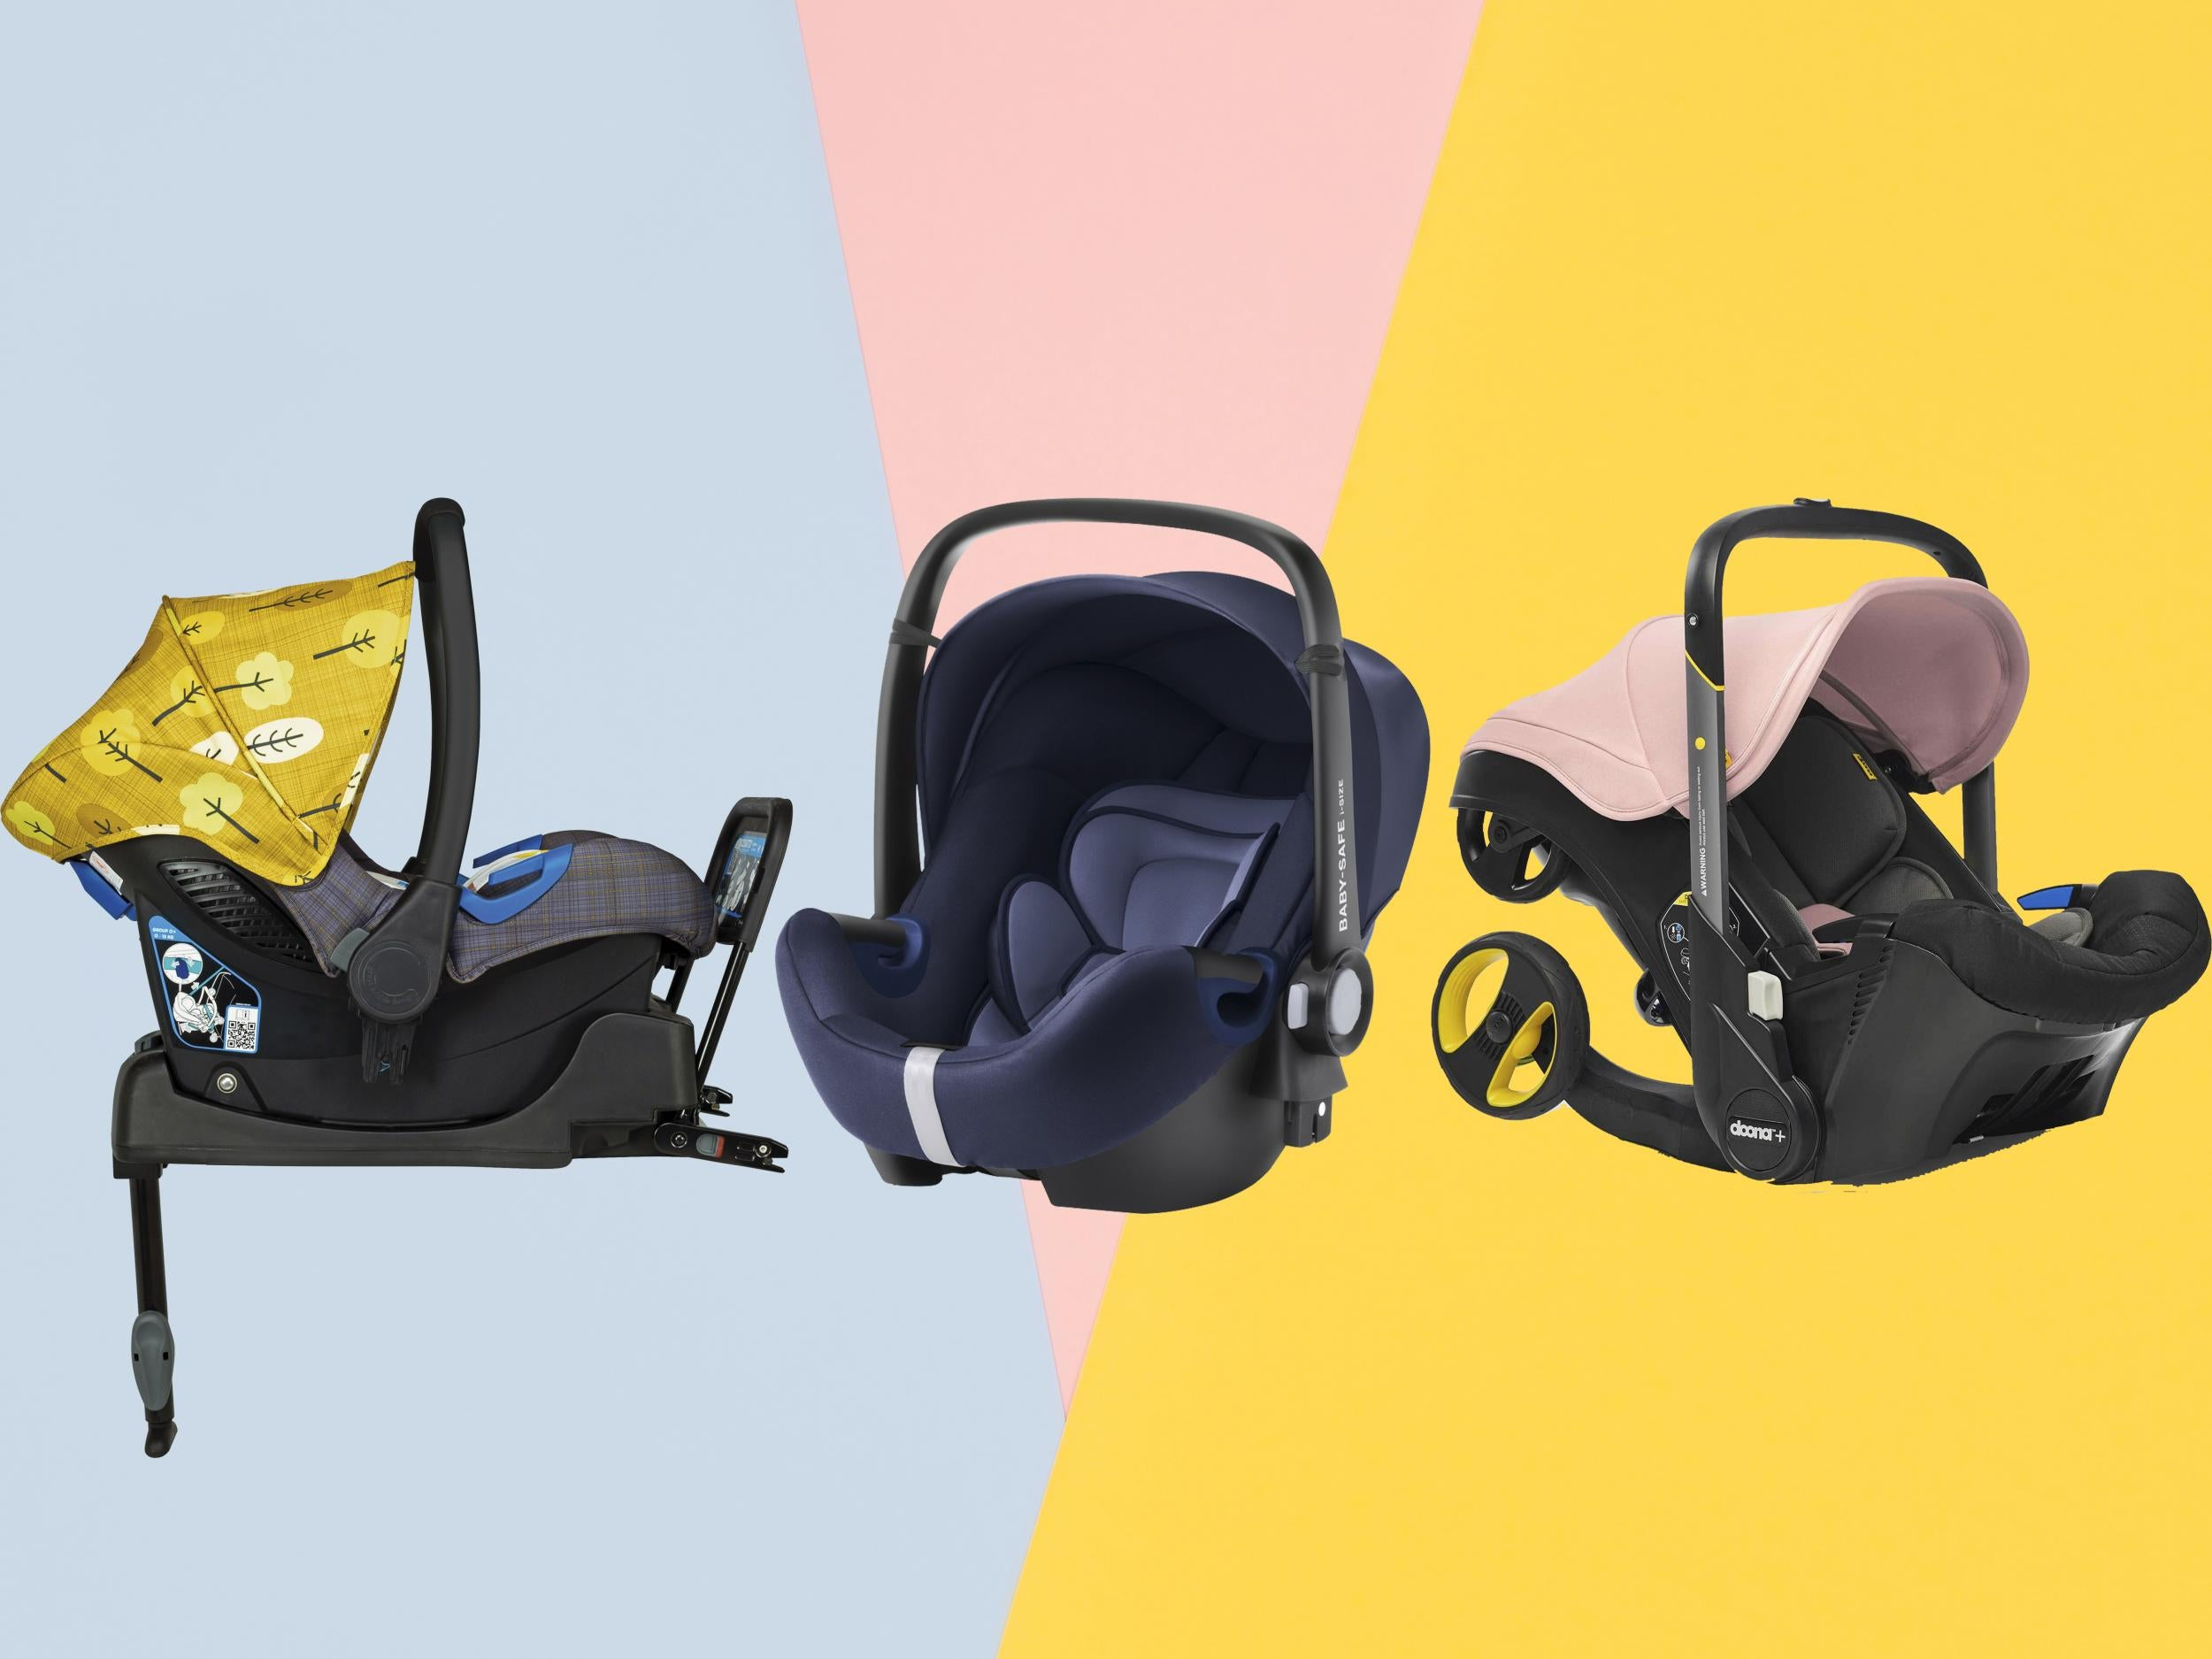 Miraculous Best Infant Car Seat Choose From Group 0 0 And I Size Lamtechconsult Wood Chair Design Ideas Lamtechconsultcom